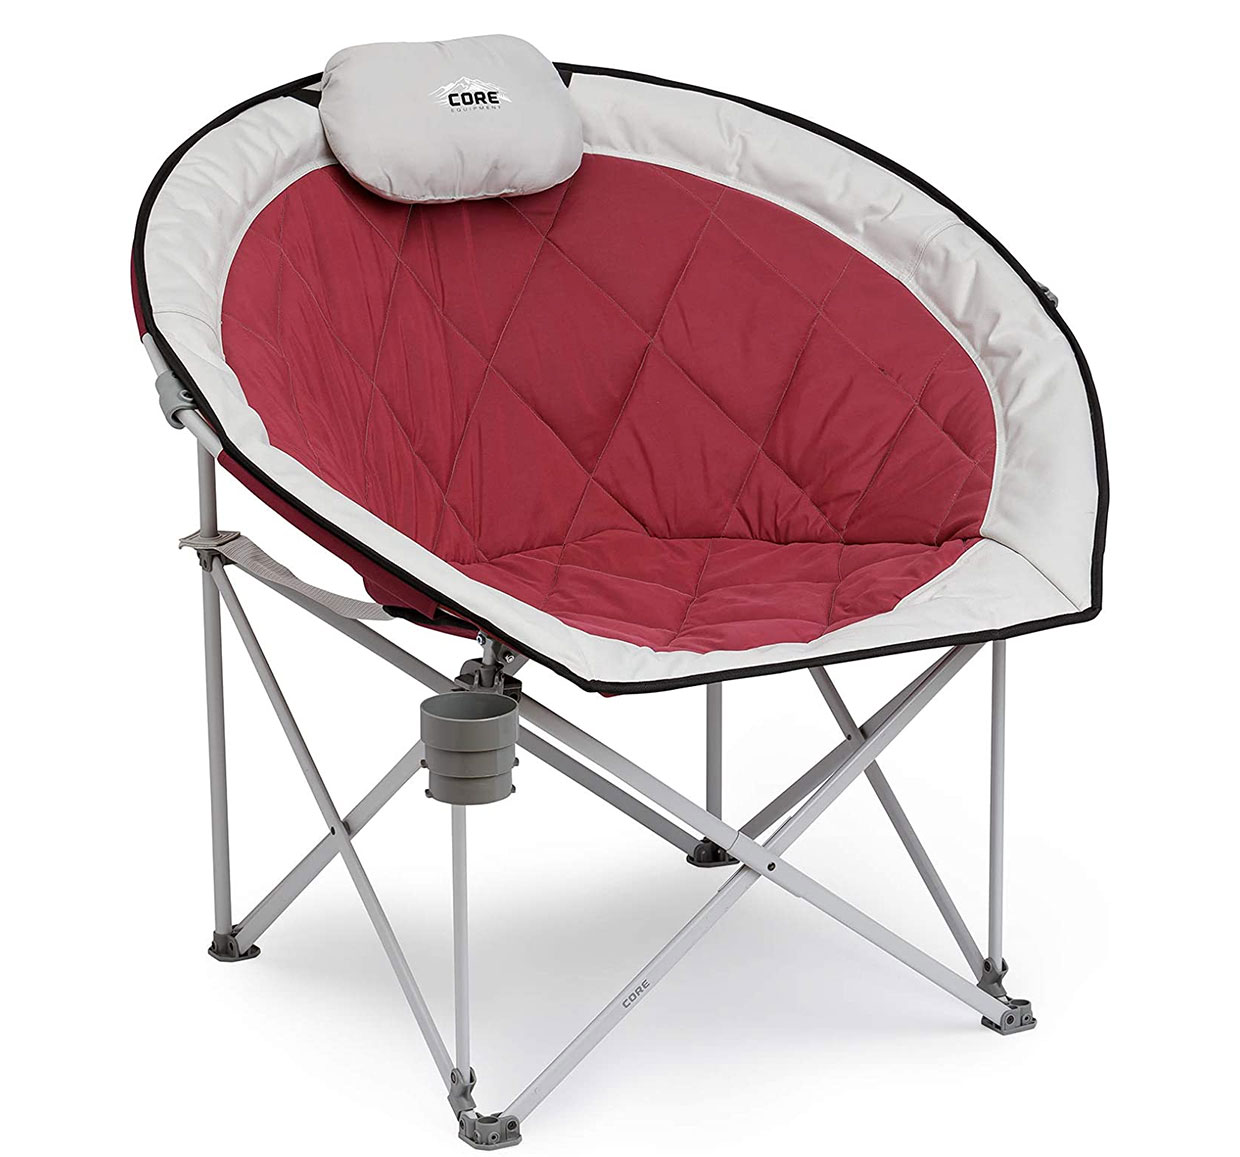 Core Padded Saucer Chair